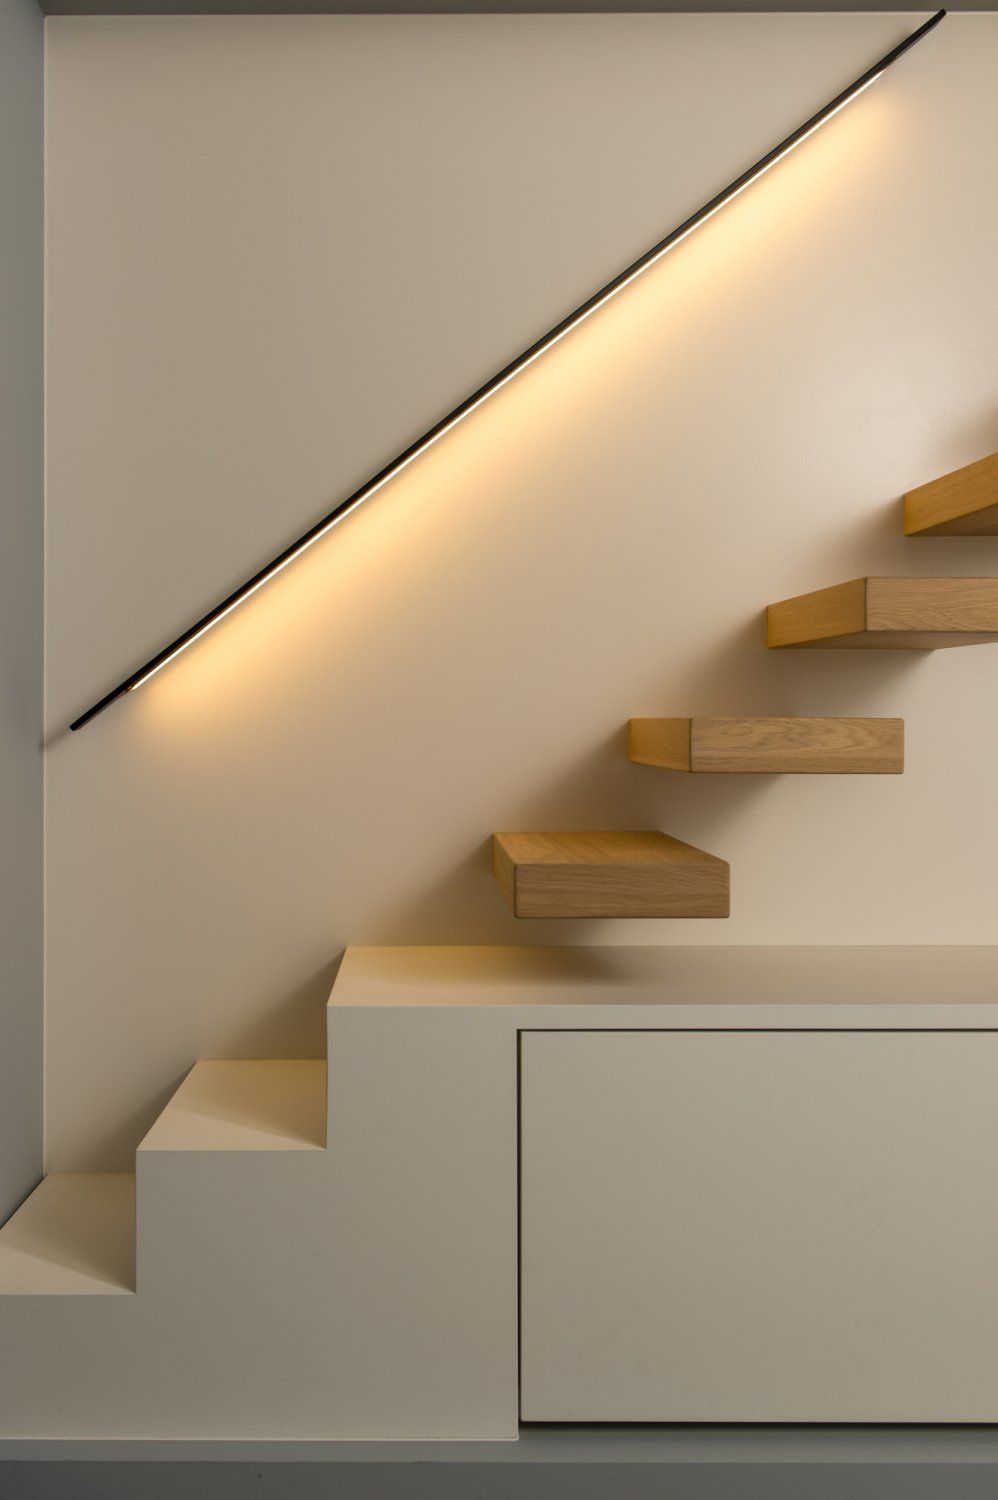 Meuble Tv Escalier Led Verlichting Decotrap More Escalier Stairs Stairway